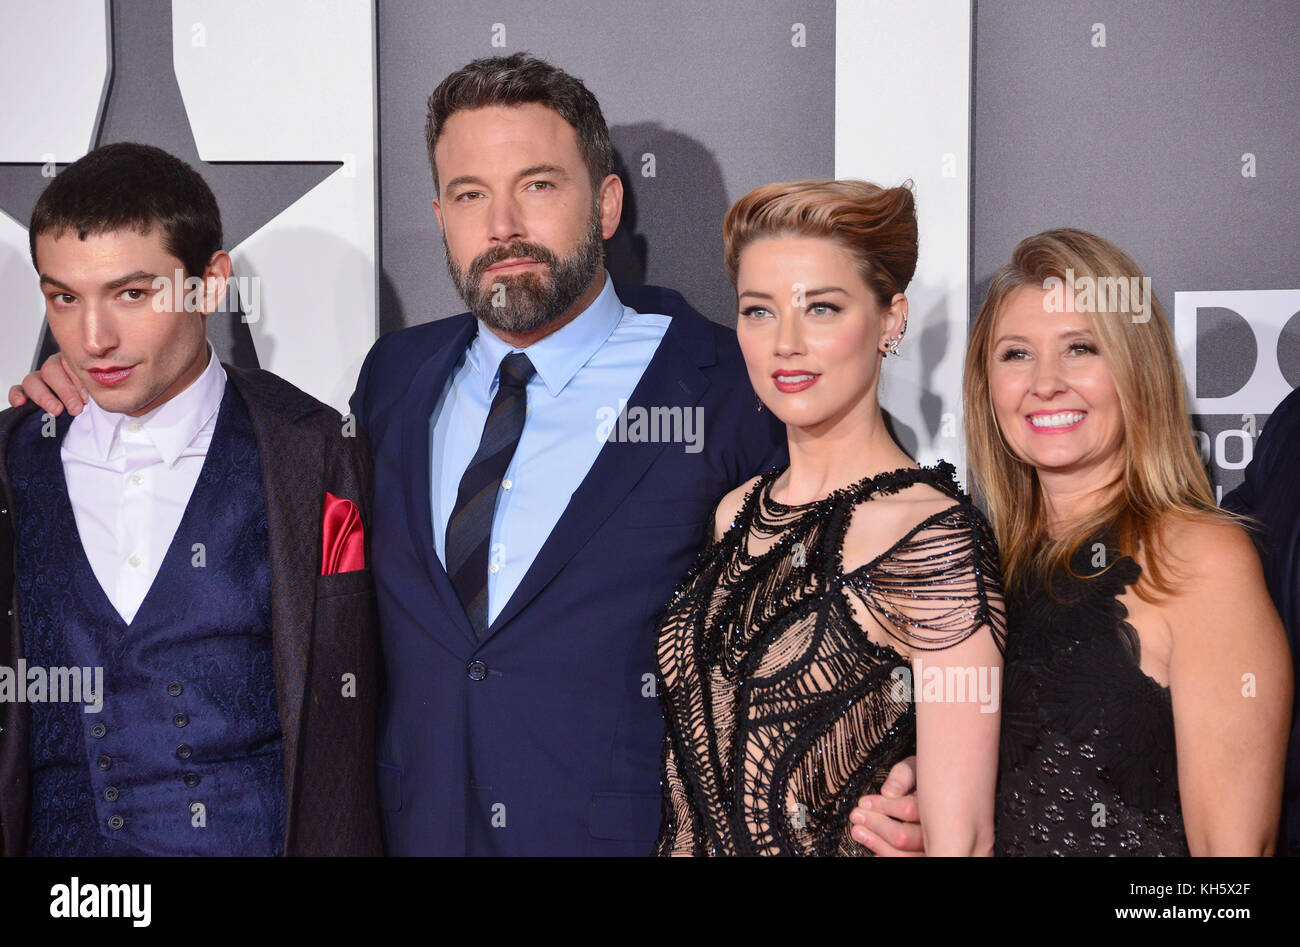 Los Angeles, USA. 13th Nov, 2017. Ezra Miller, Ben Affleck, Amber Heard attend the premiere of Warner Bros. Pictures' - Stock Image